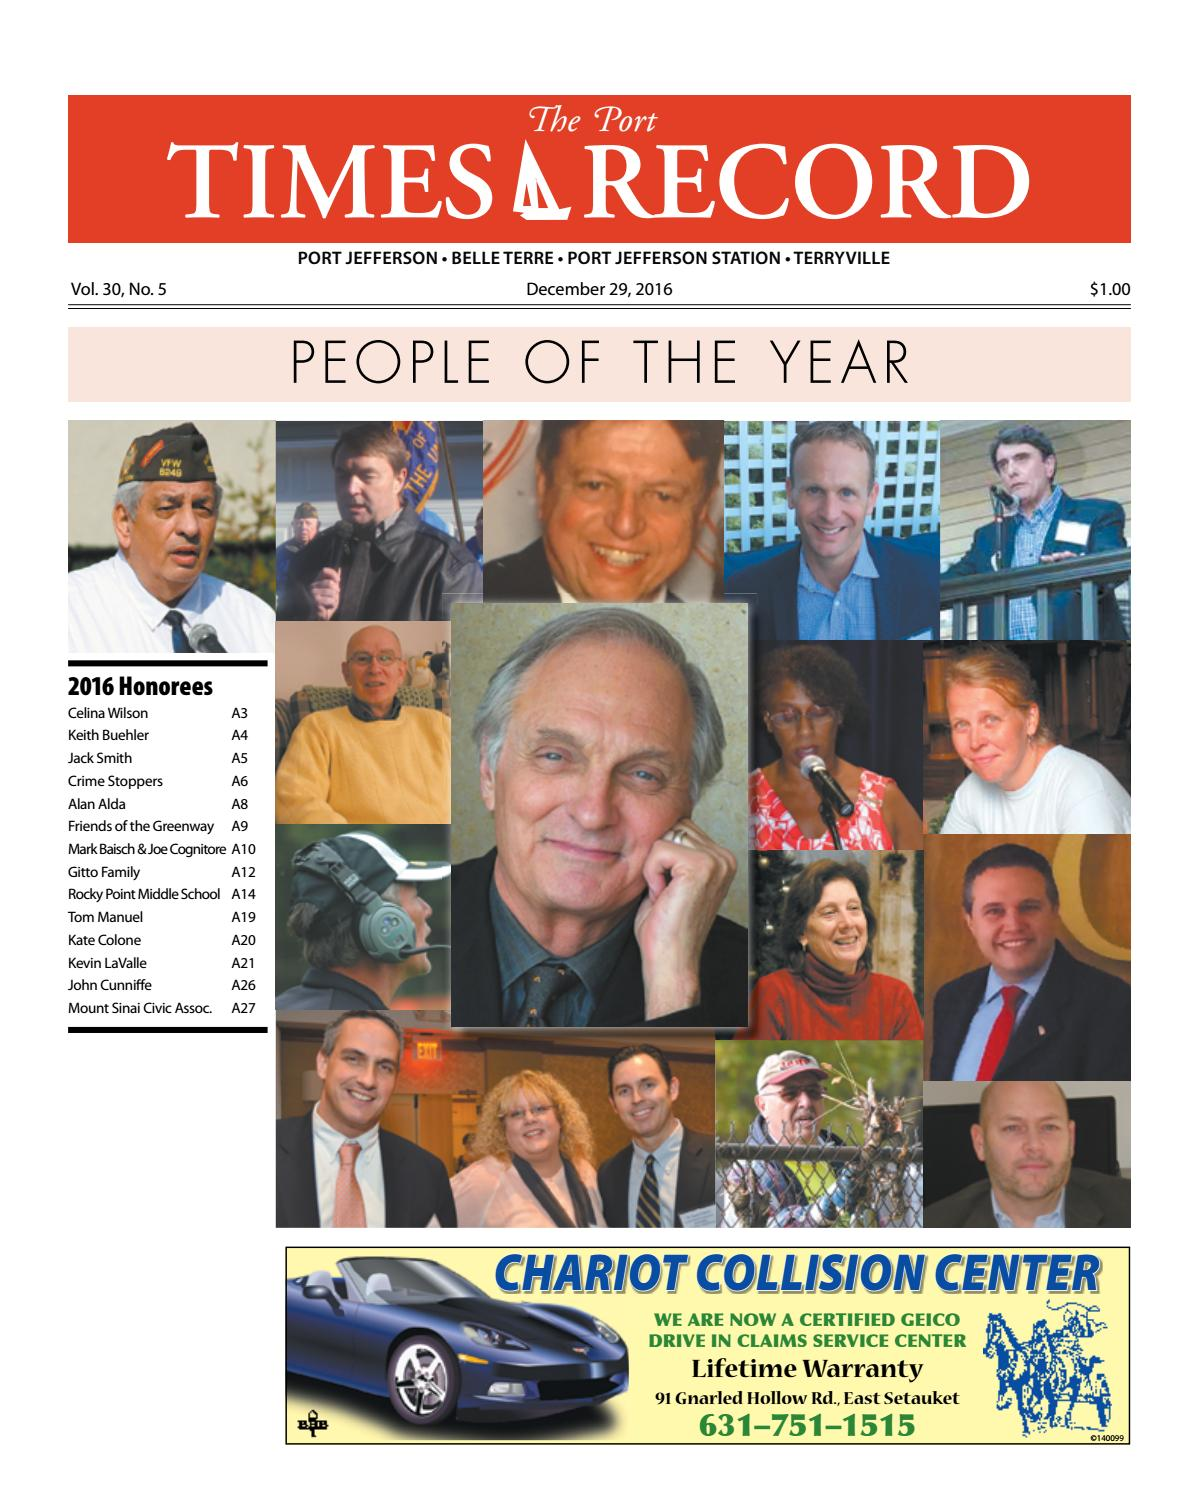 Manuel Collision Center >> The Port Times Record - December 29, 2016 by TBR News ...